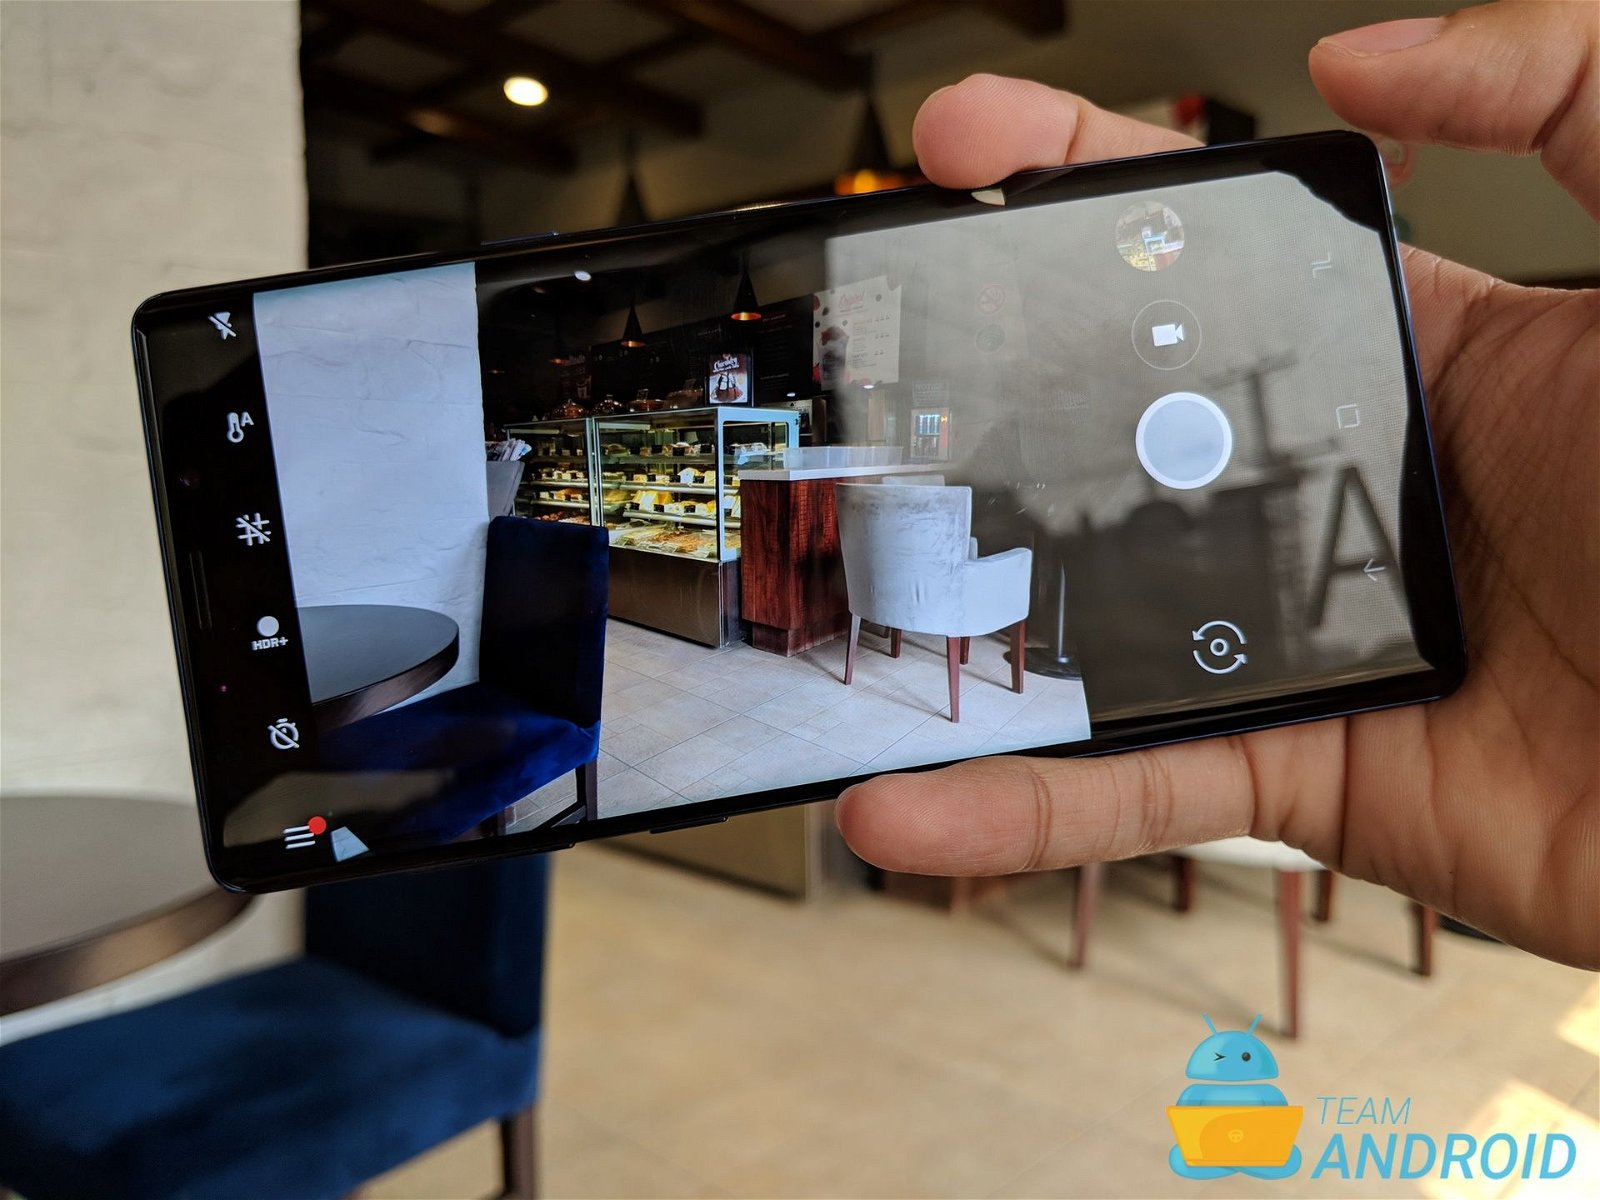 Download Camera NX 7 4 APK - Google Camera v5 2 Mod